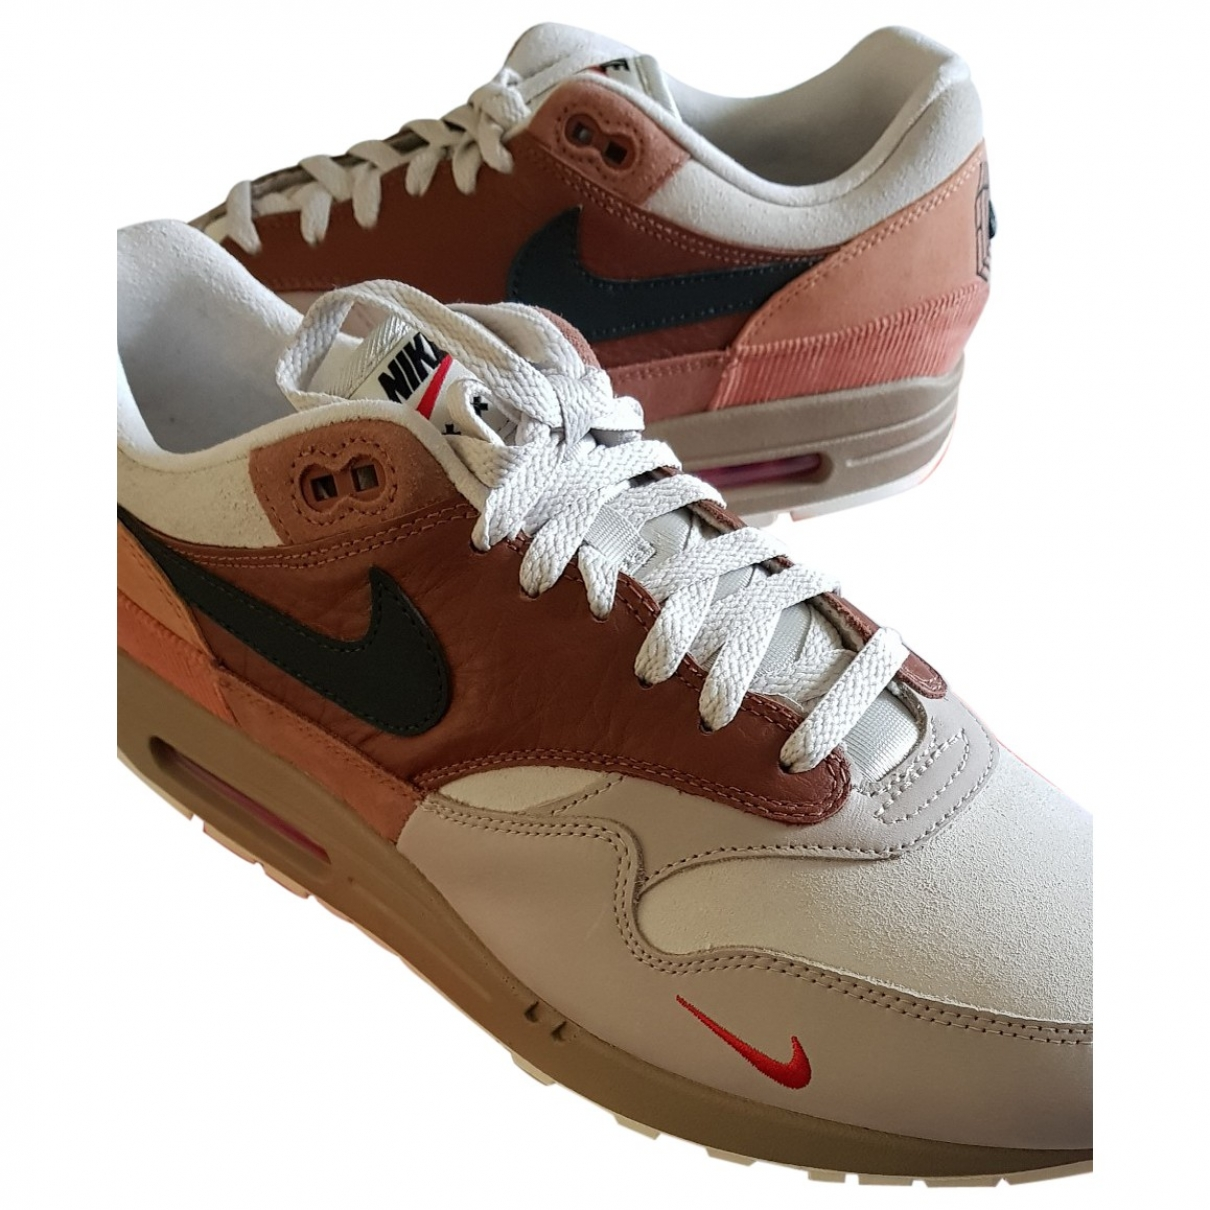 Nike Air Max 1 Suede Trainers for Men 47 EU